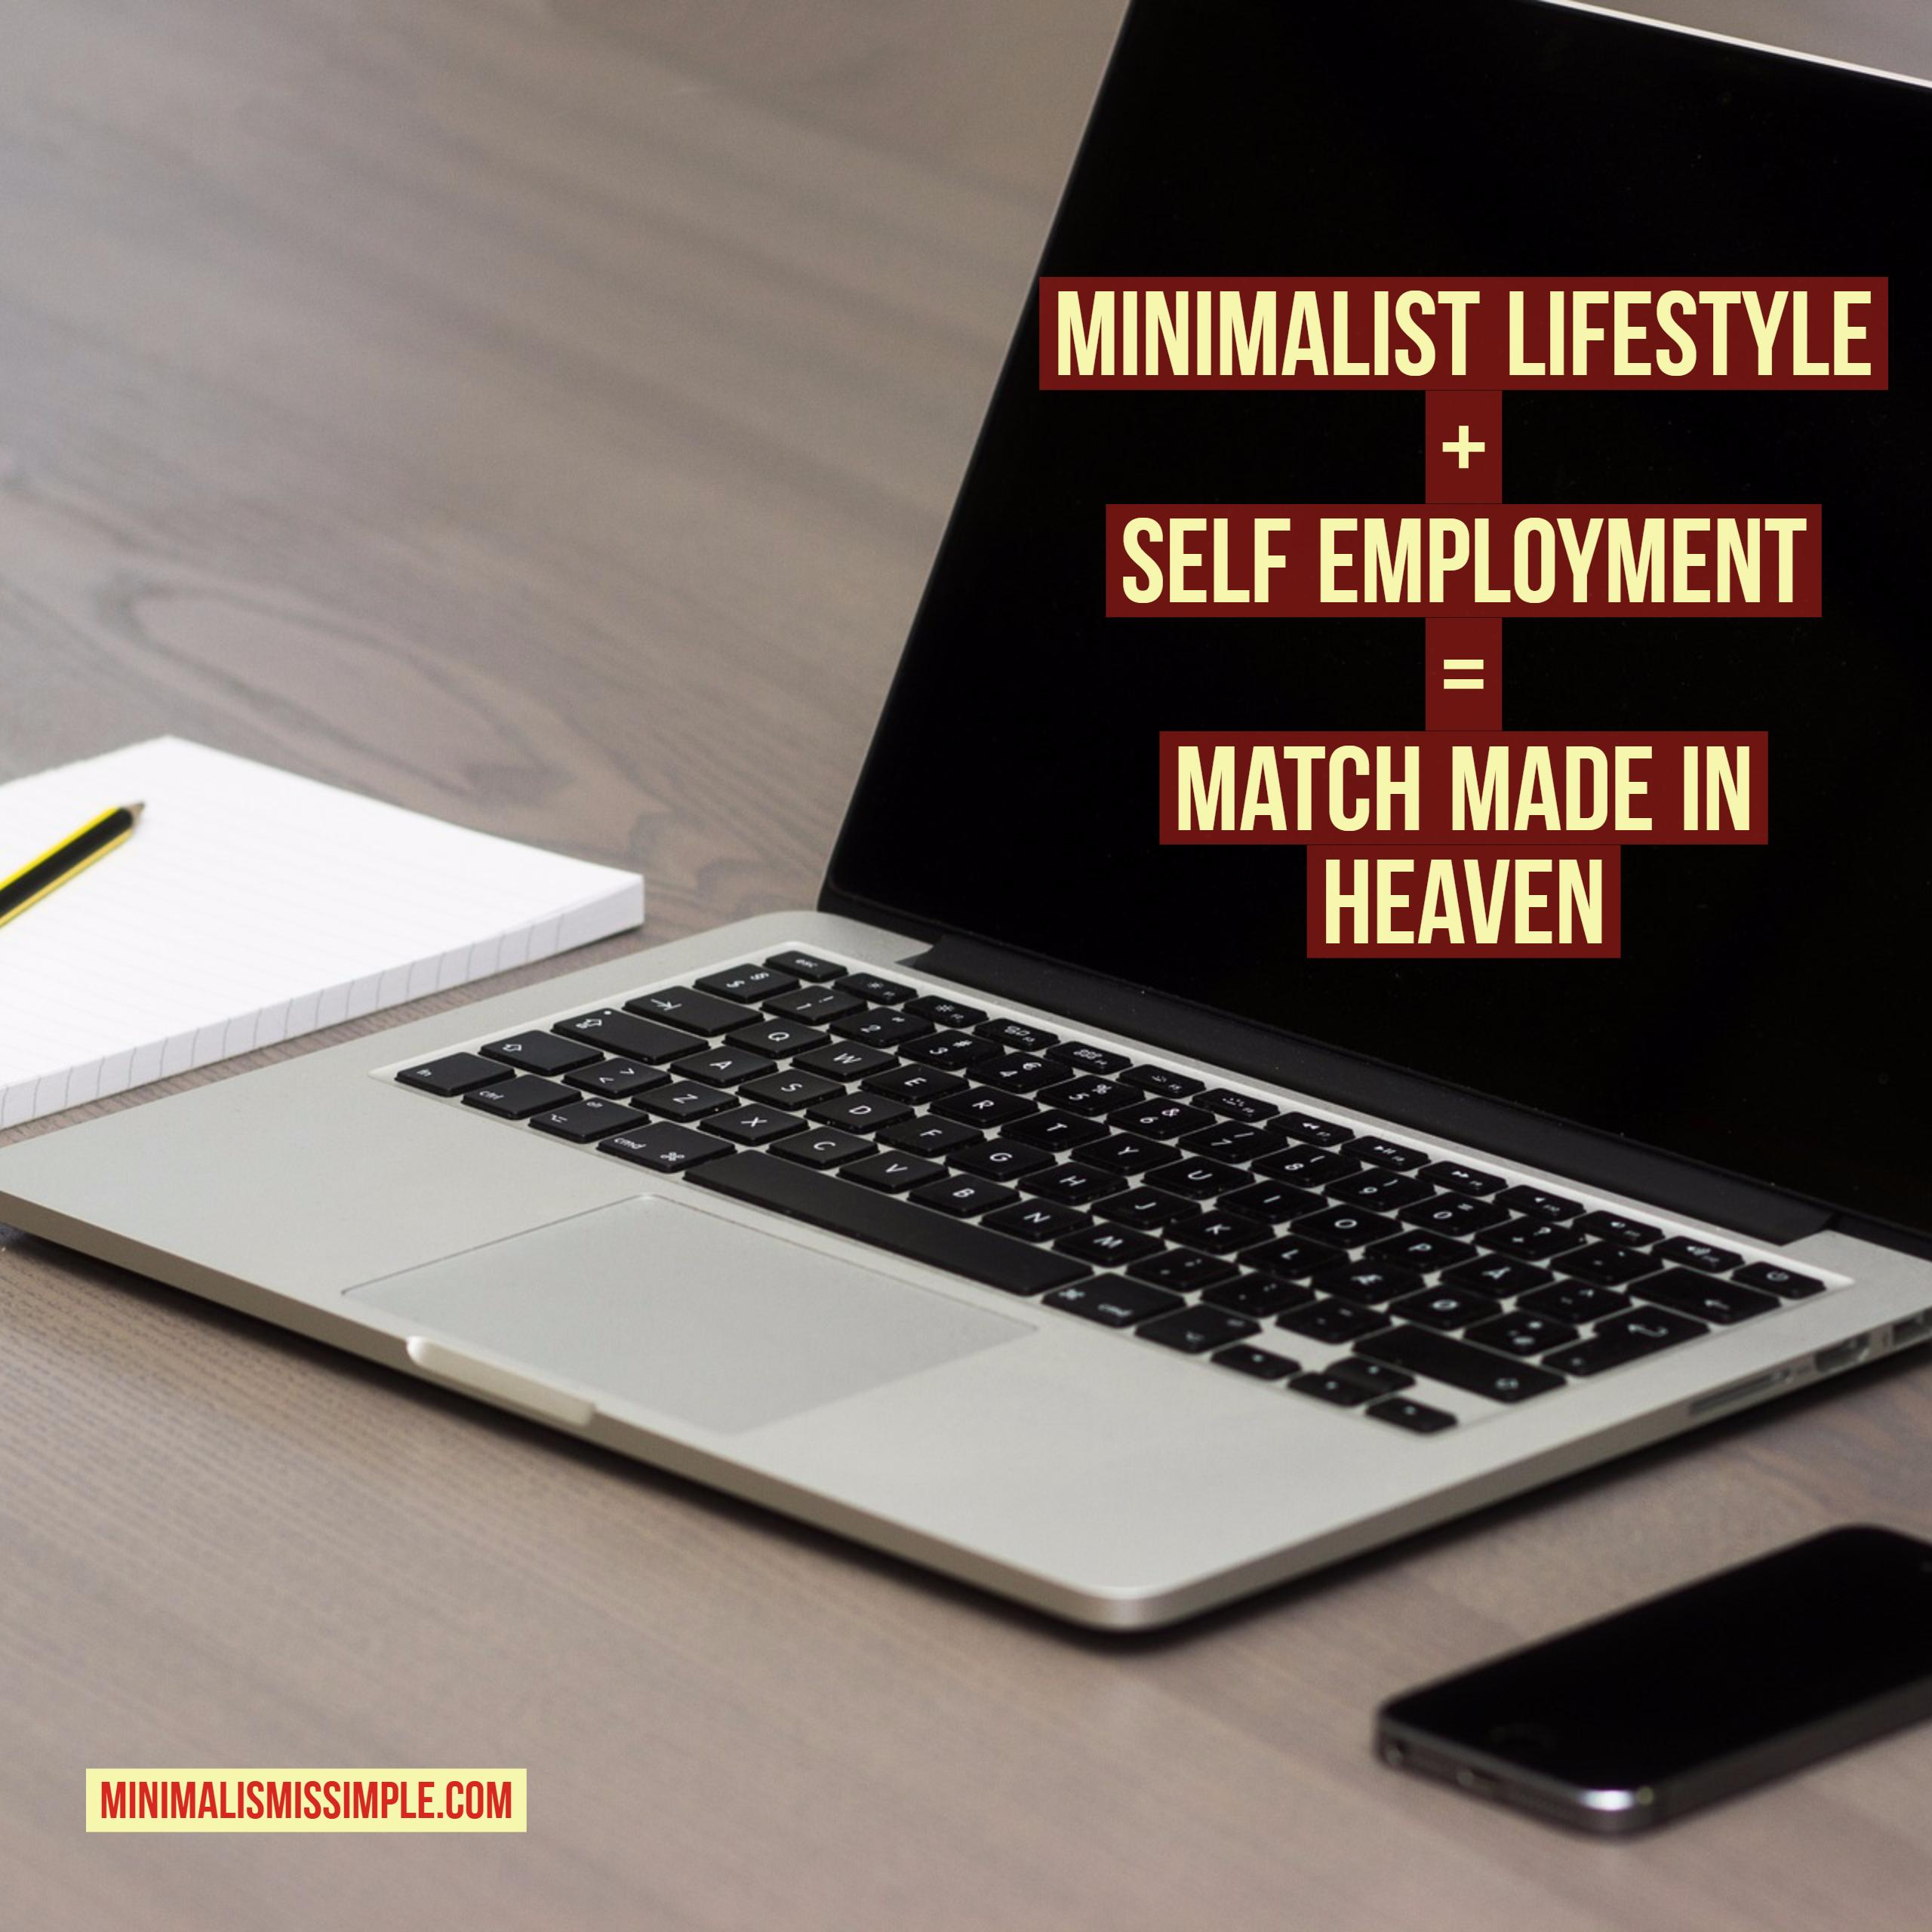 Minimalist Lifestyle Plus Self Employment Perfect Match Minimalismissimple.com